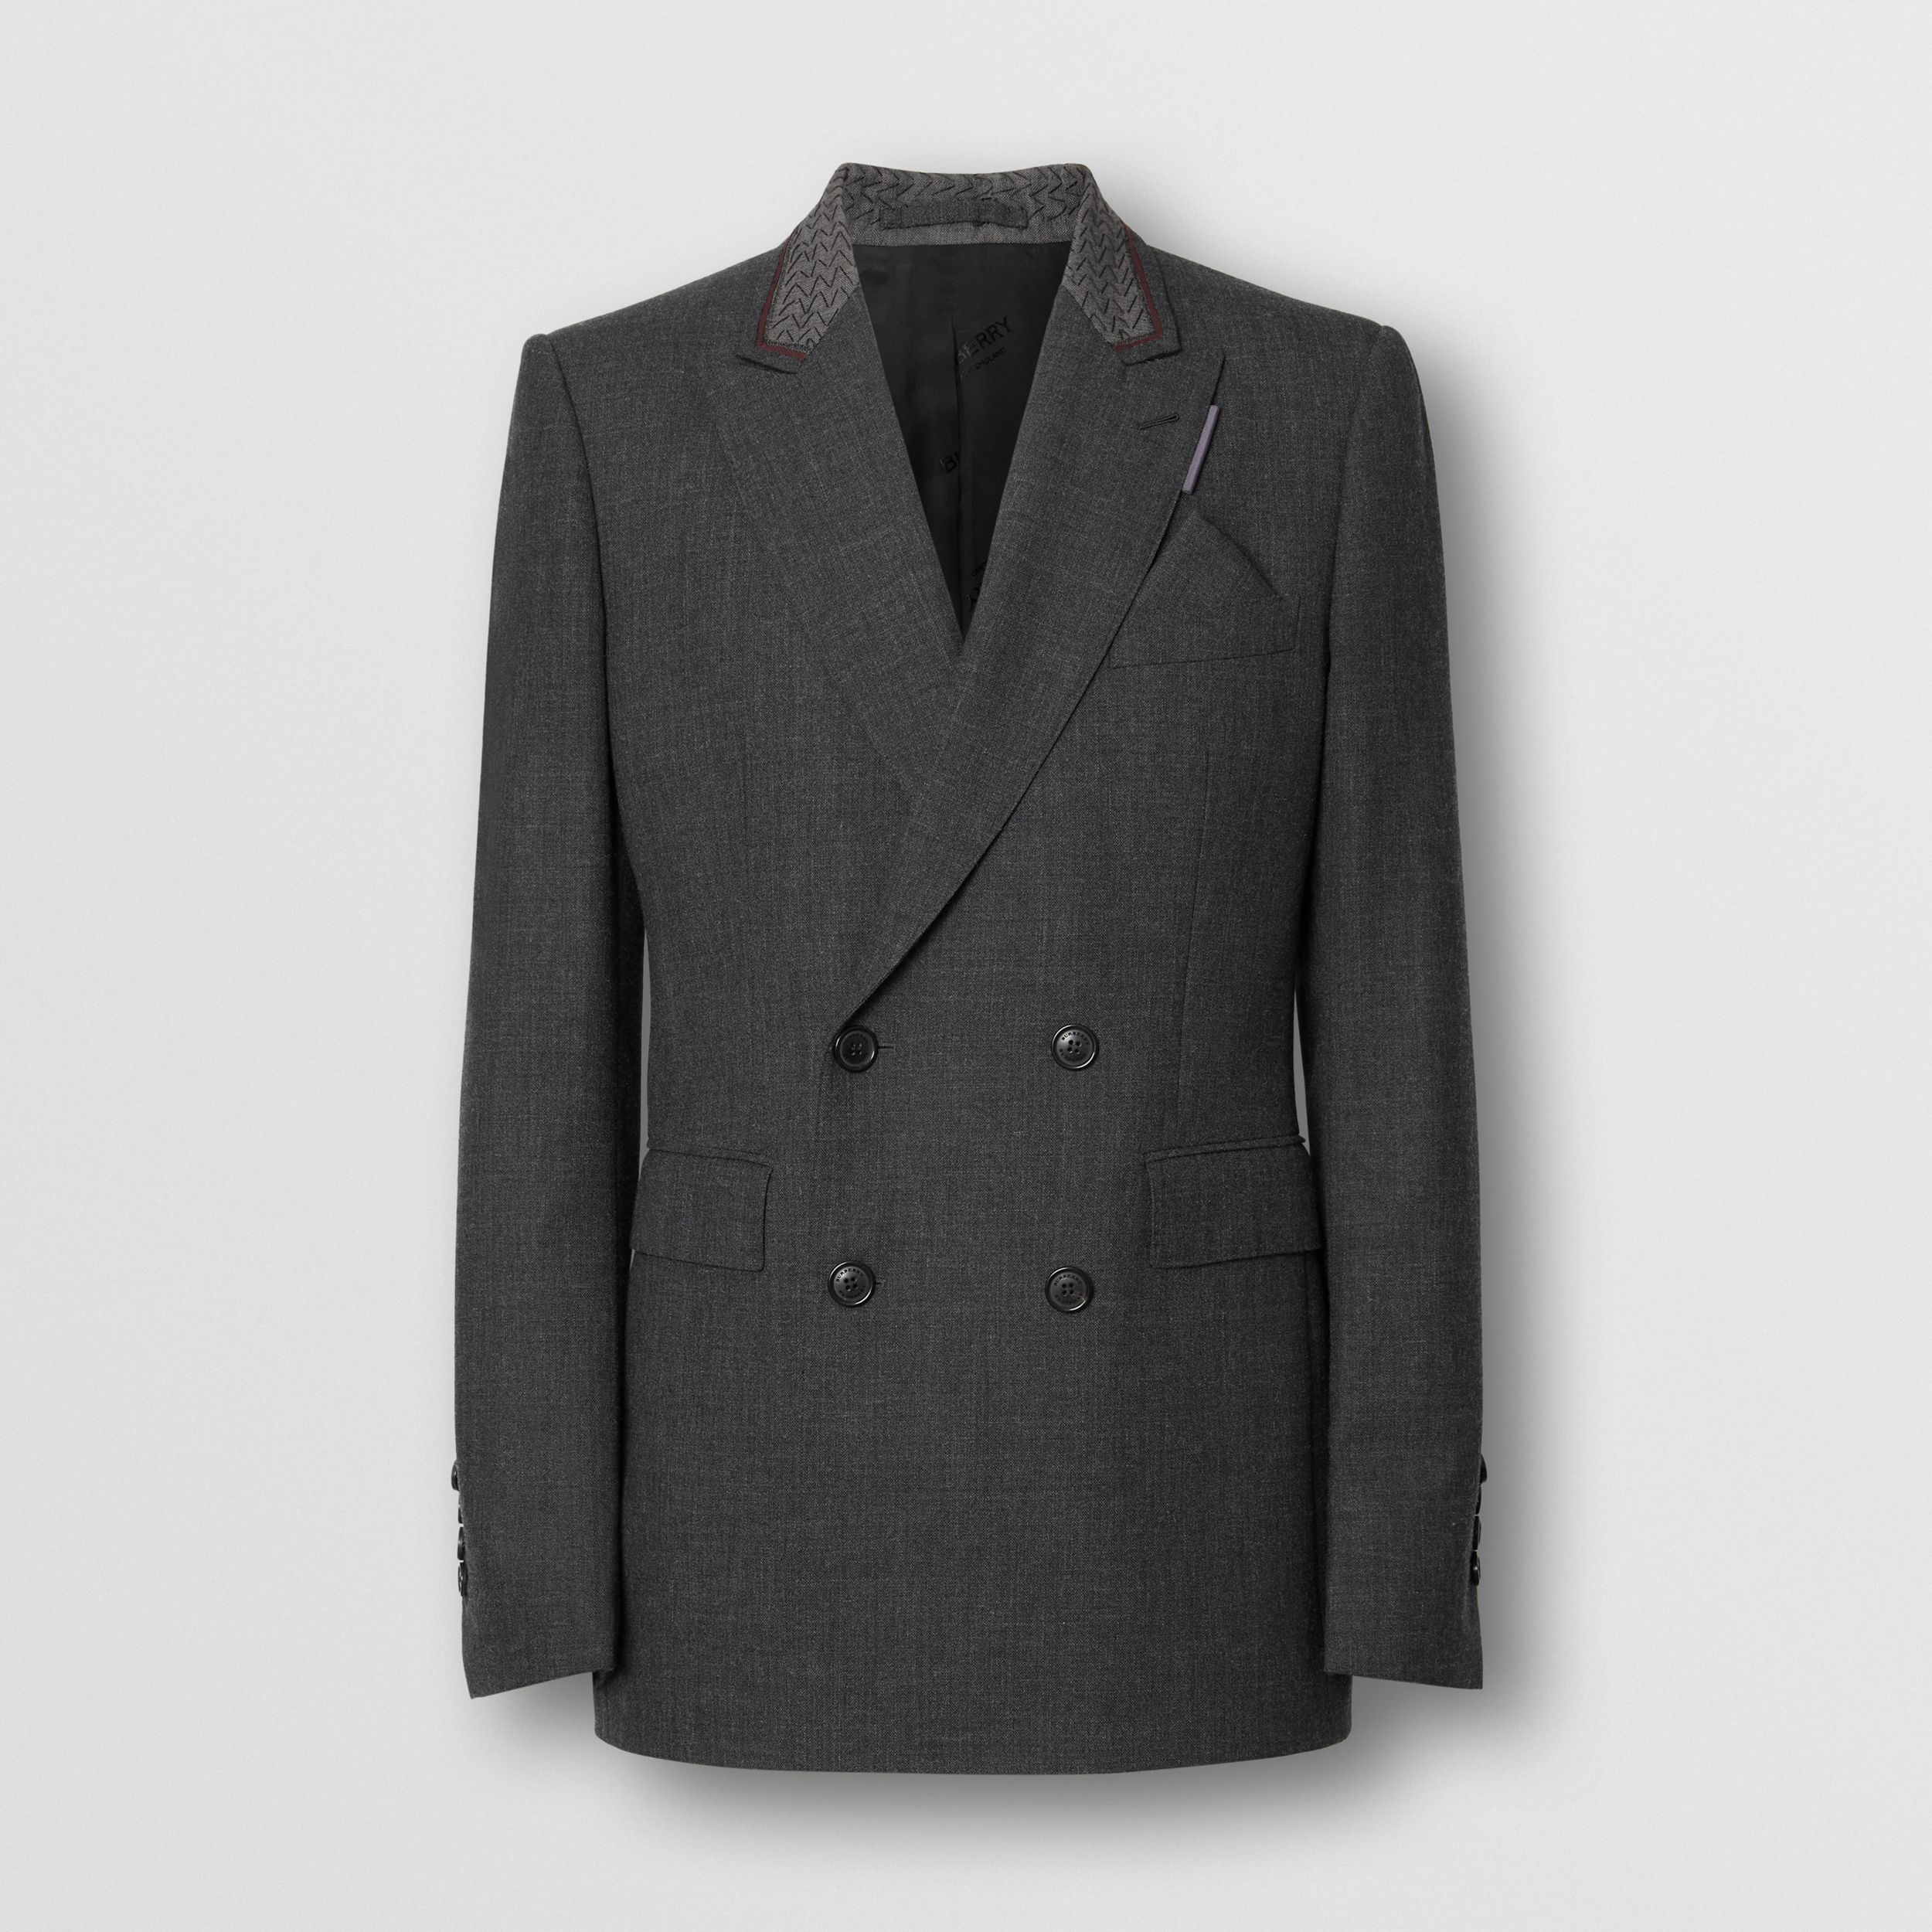 English Fit Wool Double-breasted Jacket in Dark Grey - Men | Burberry - 1